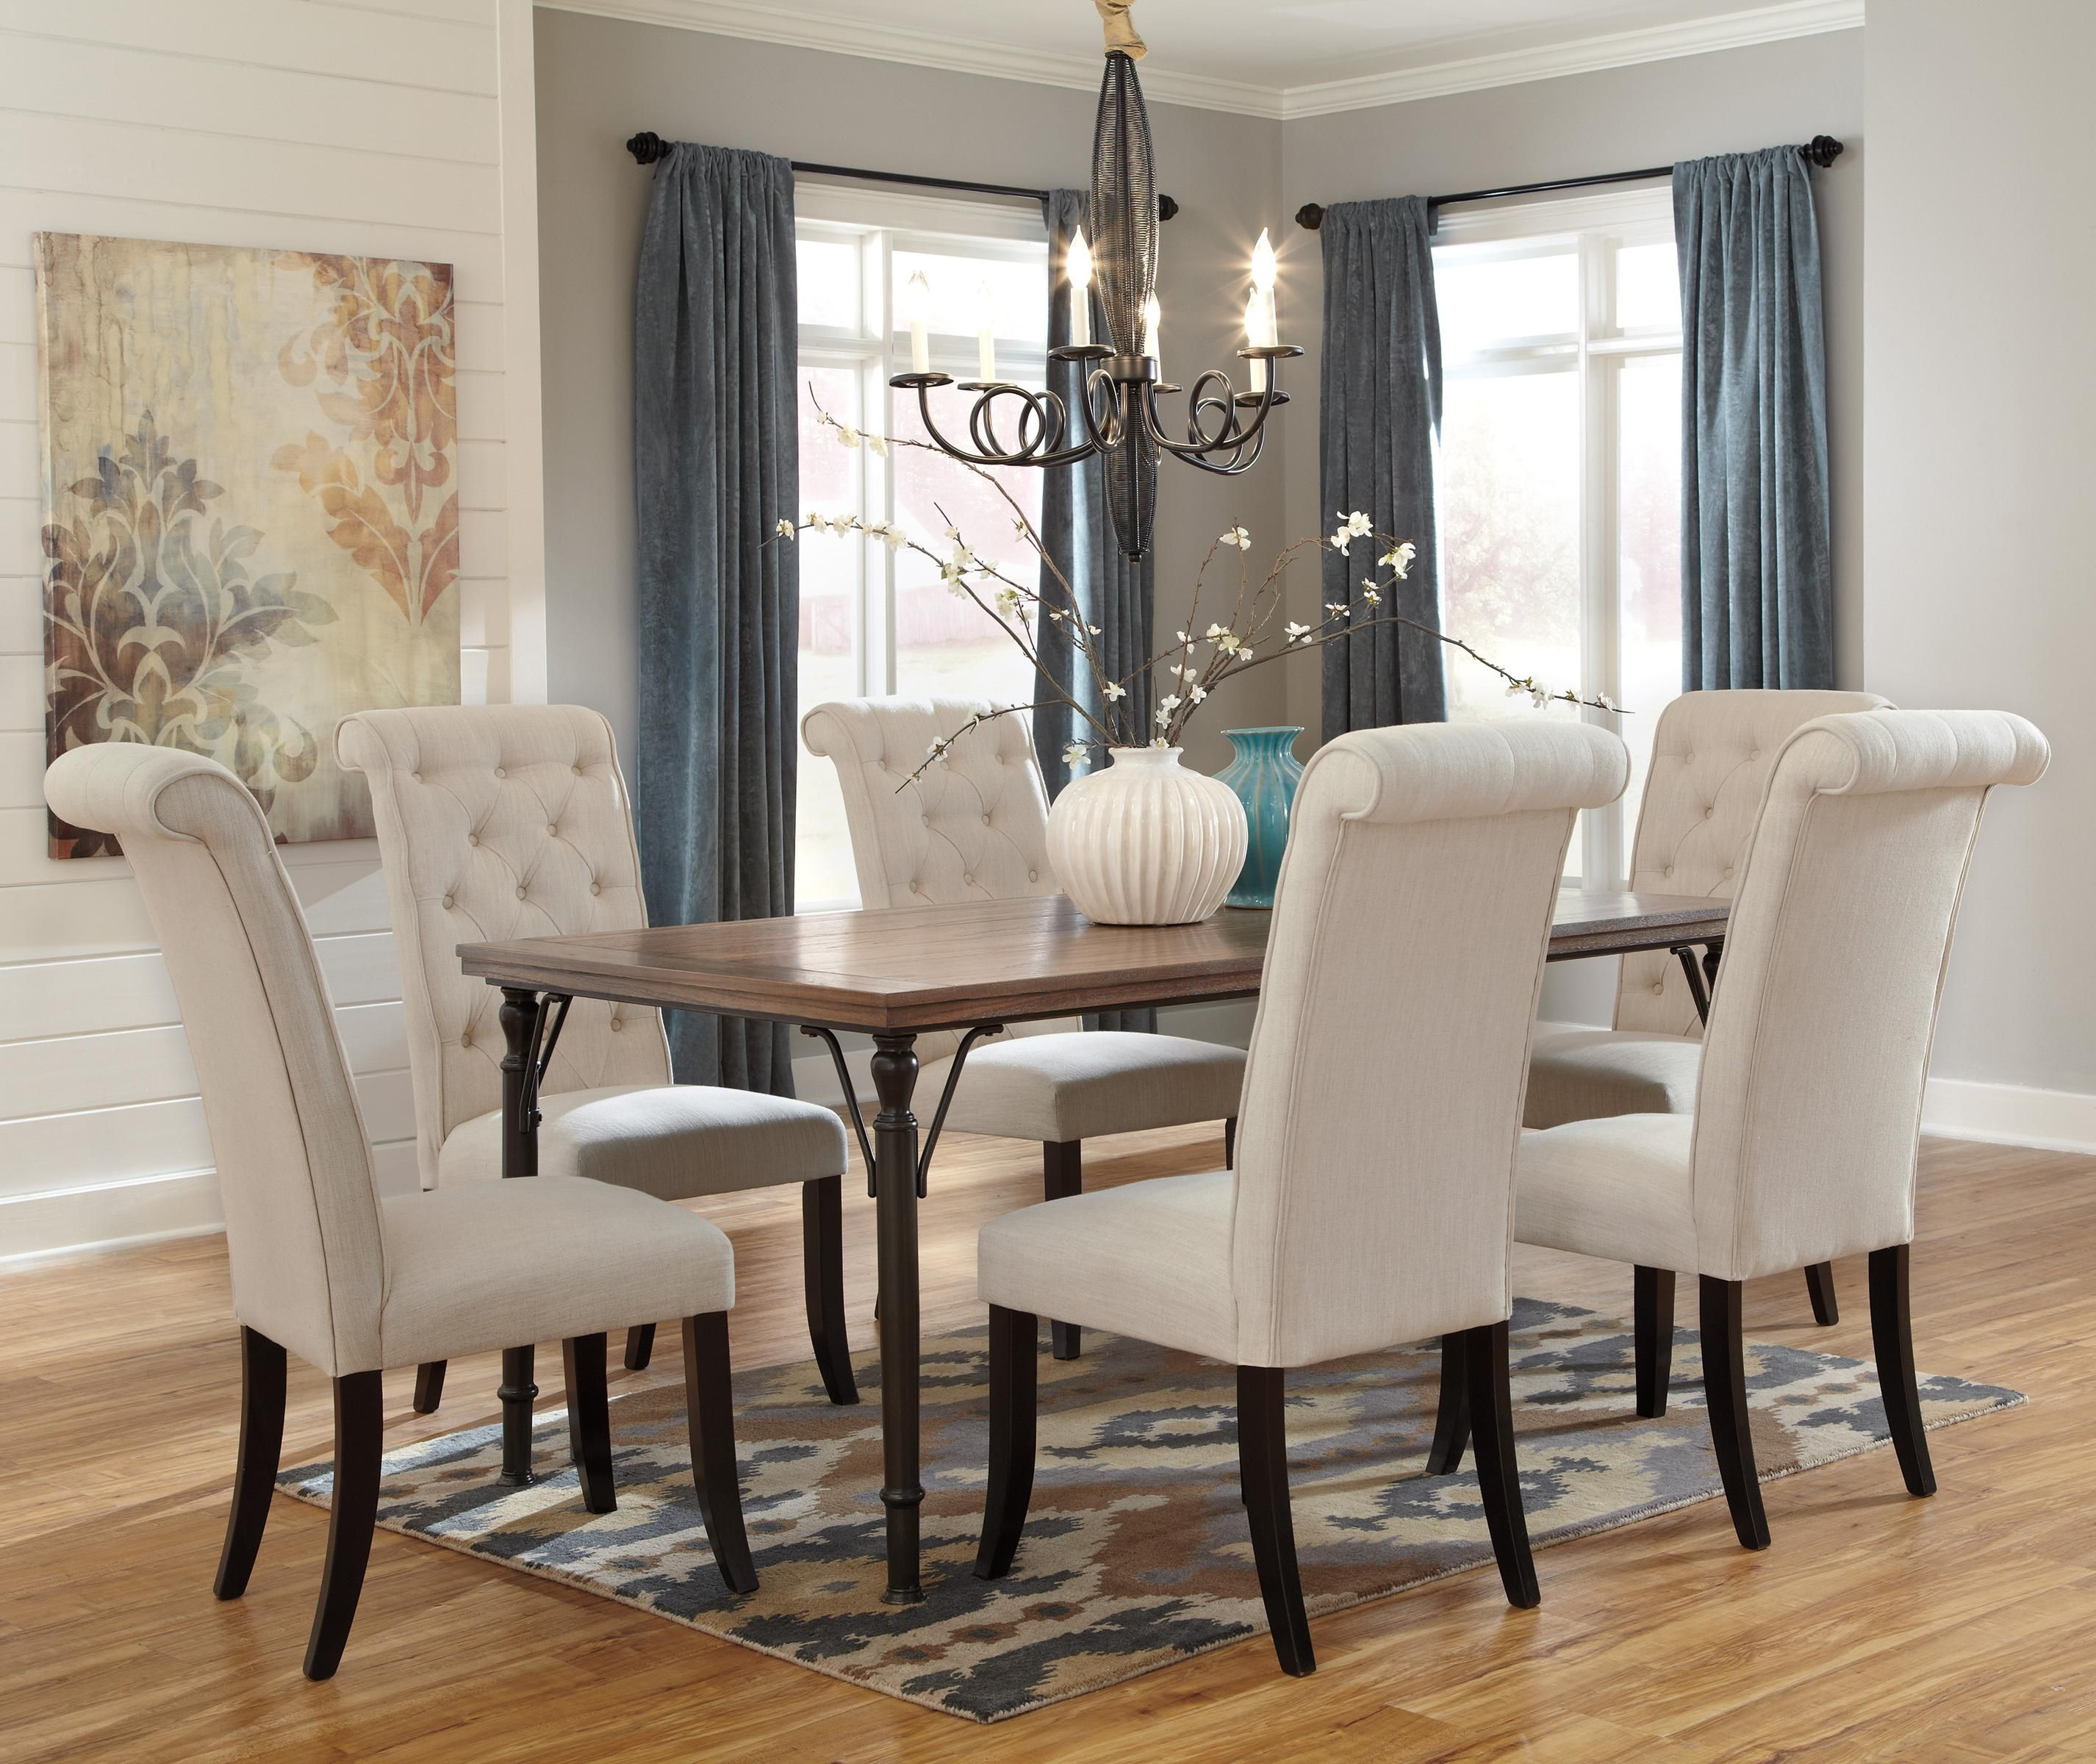 Dining table sets wood and metal dining tables wood and metal dining - Tripton 7 Piece Rectangular Dining Room Table Set W Wood Top Metal Legs By Signature Design By Ashley Furniture